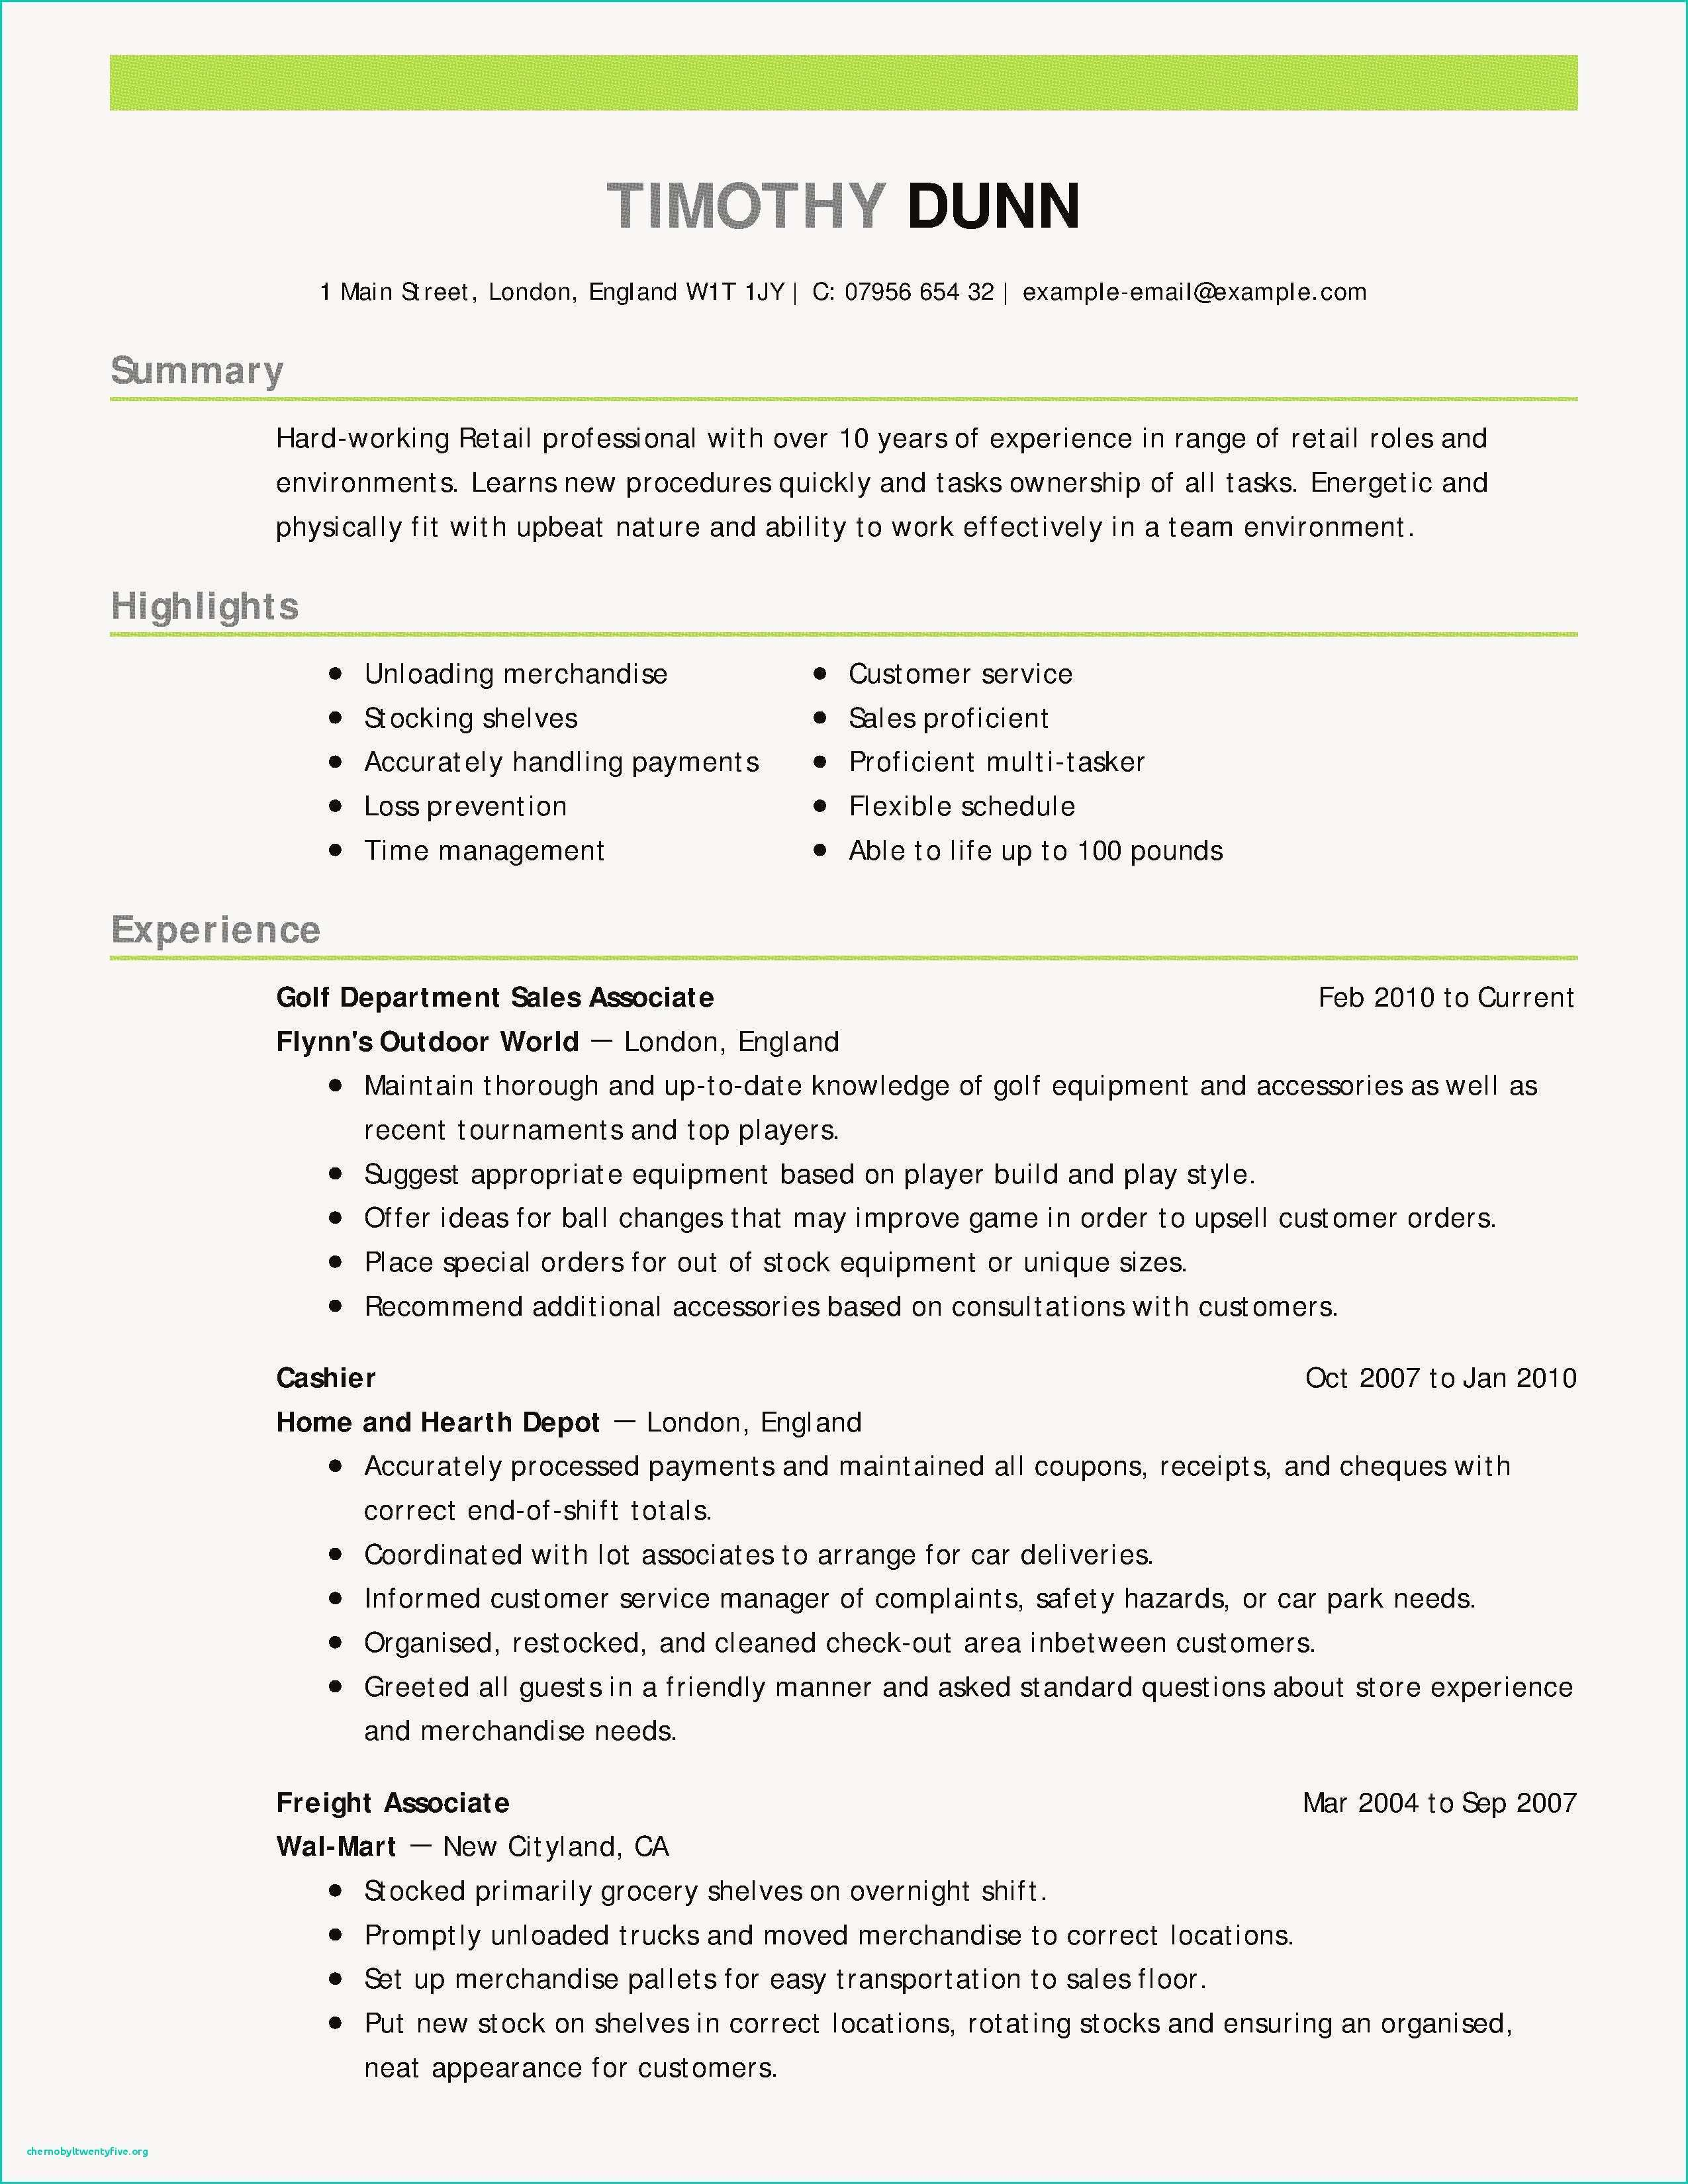 Resume Template Restaurant Manager - Restaurant Management Resumes Elegant Grapher Resume Sample